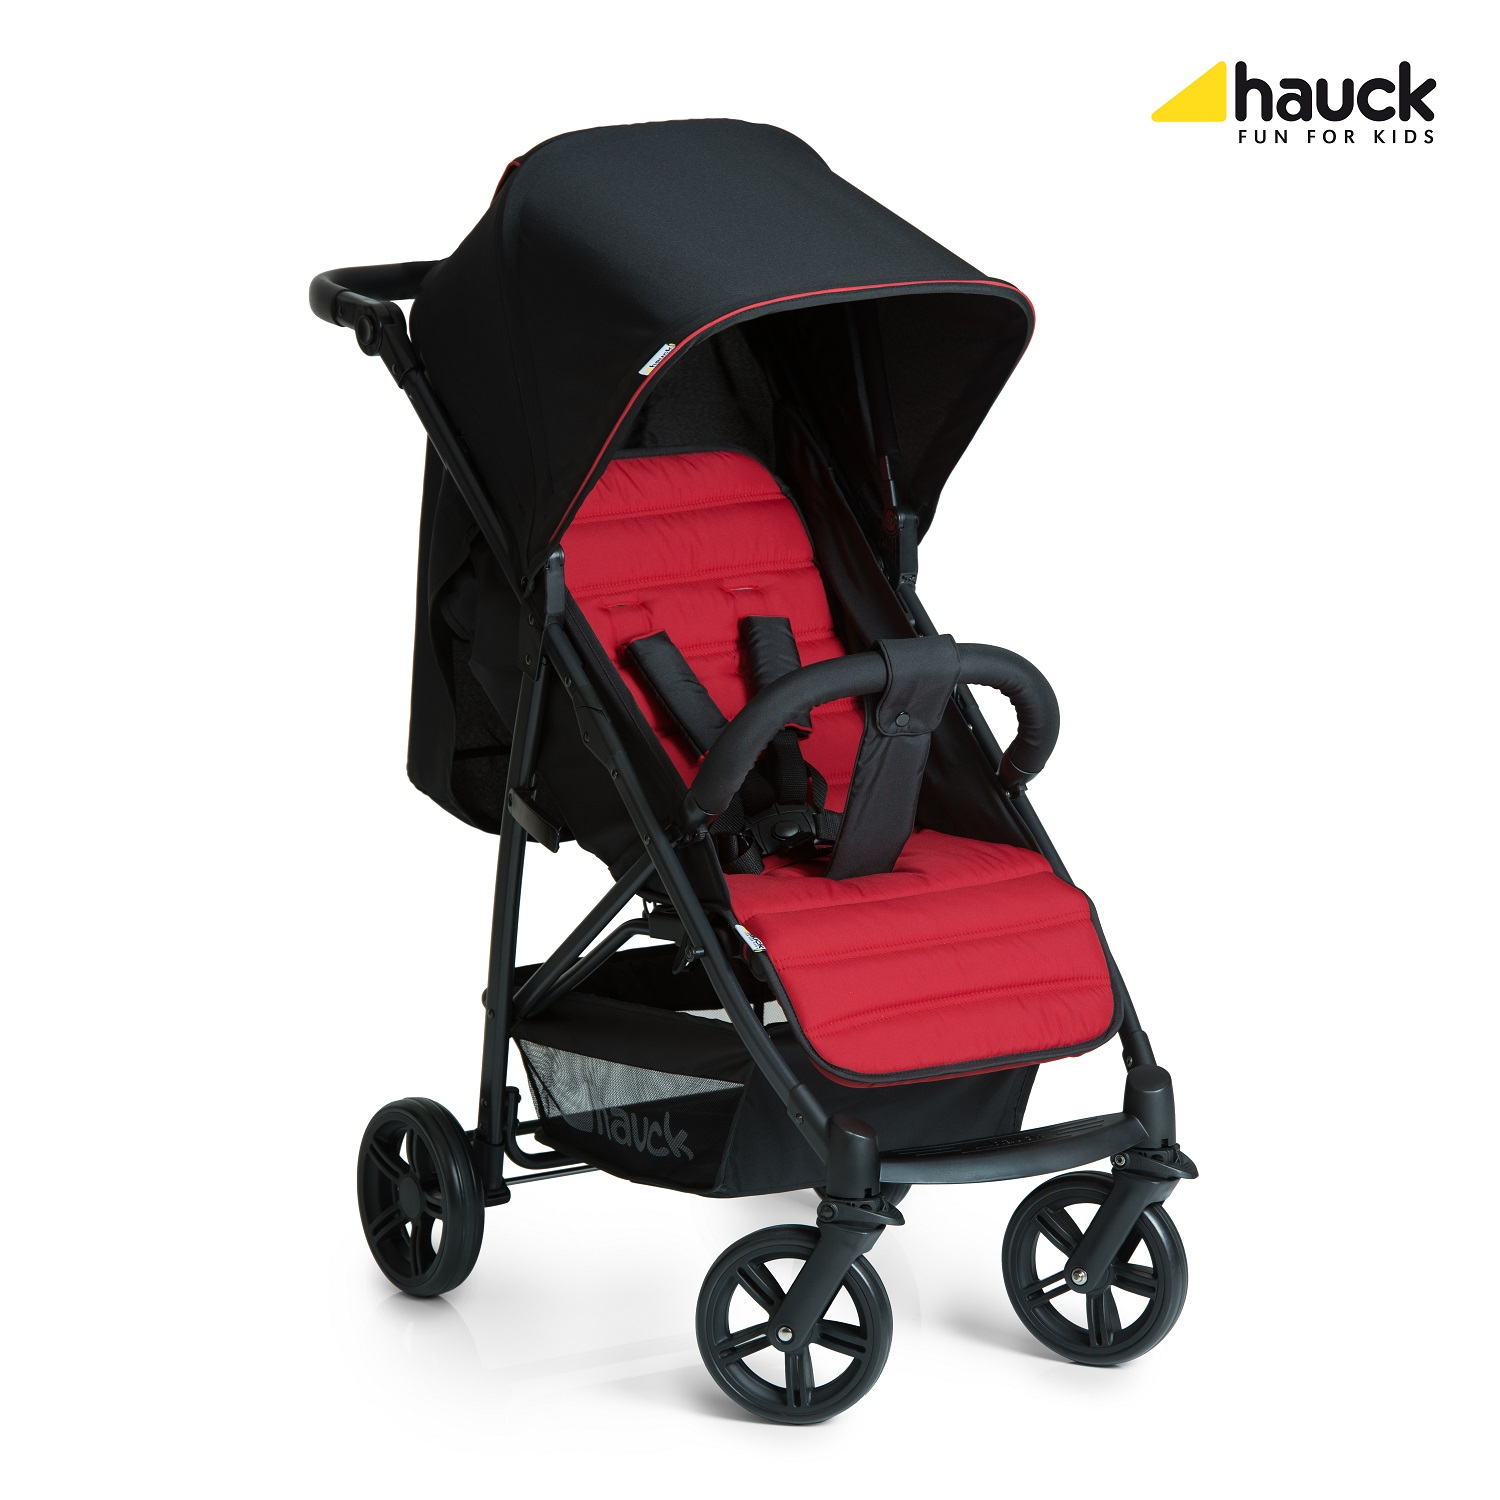 Hauck Buy Me Stroller Shopping Basket